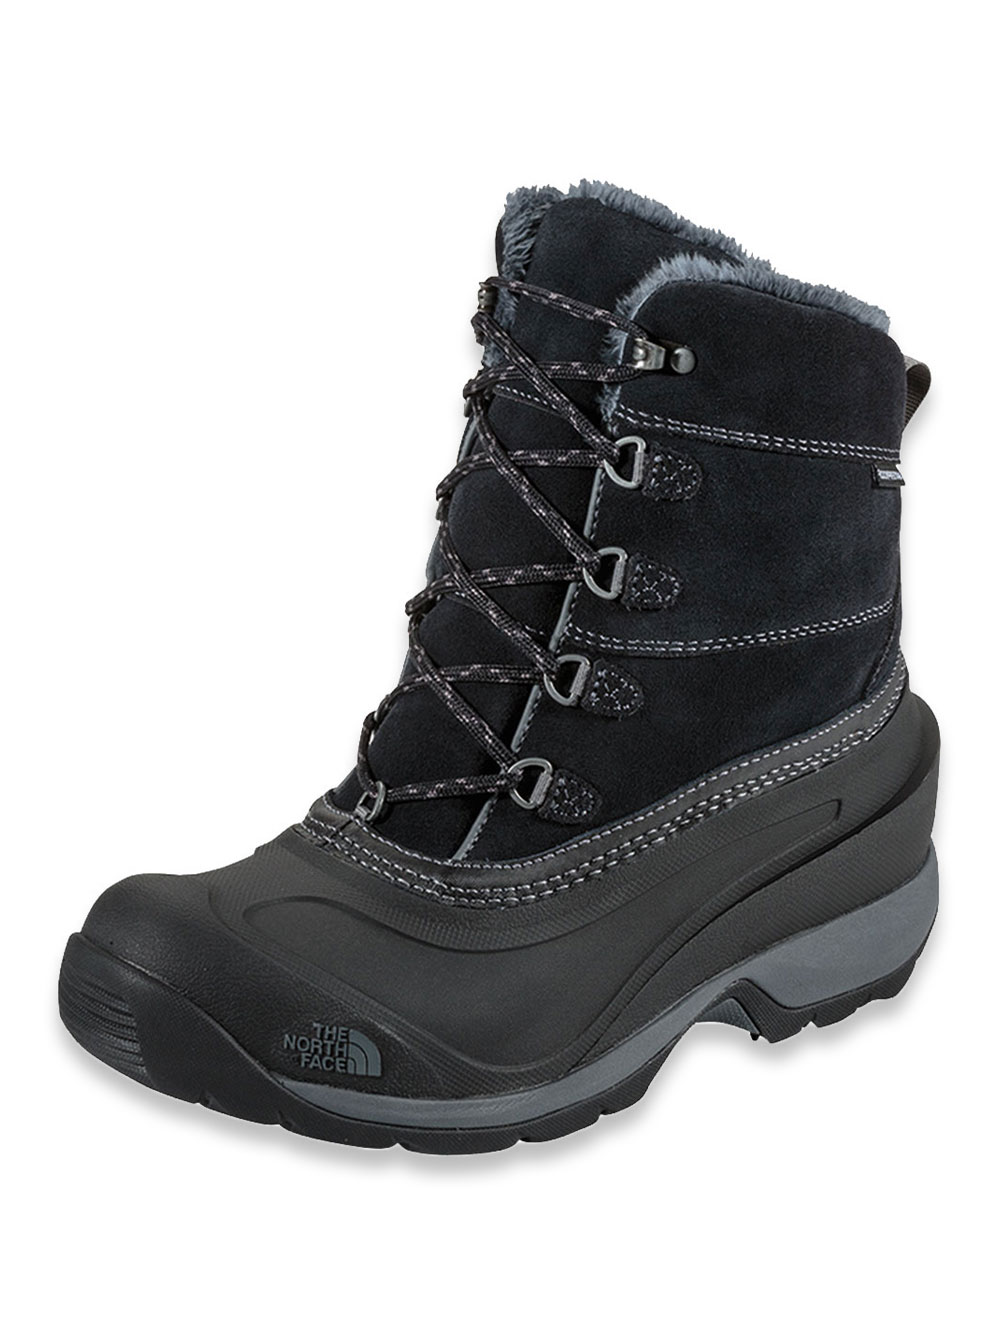 The North Face Women S Chilkat Iii Pull On Boots